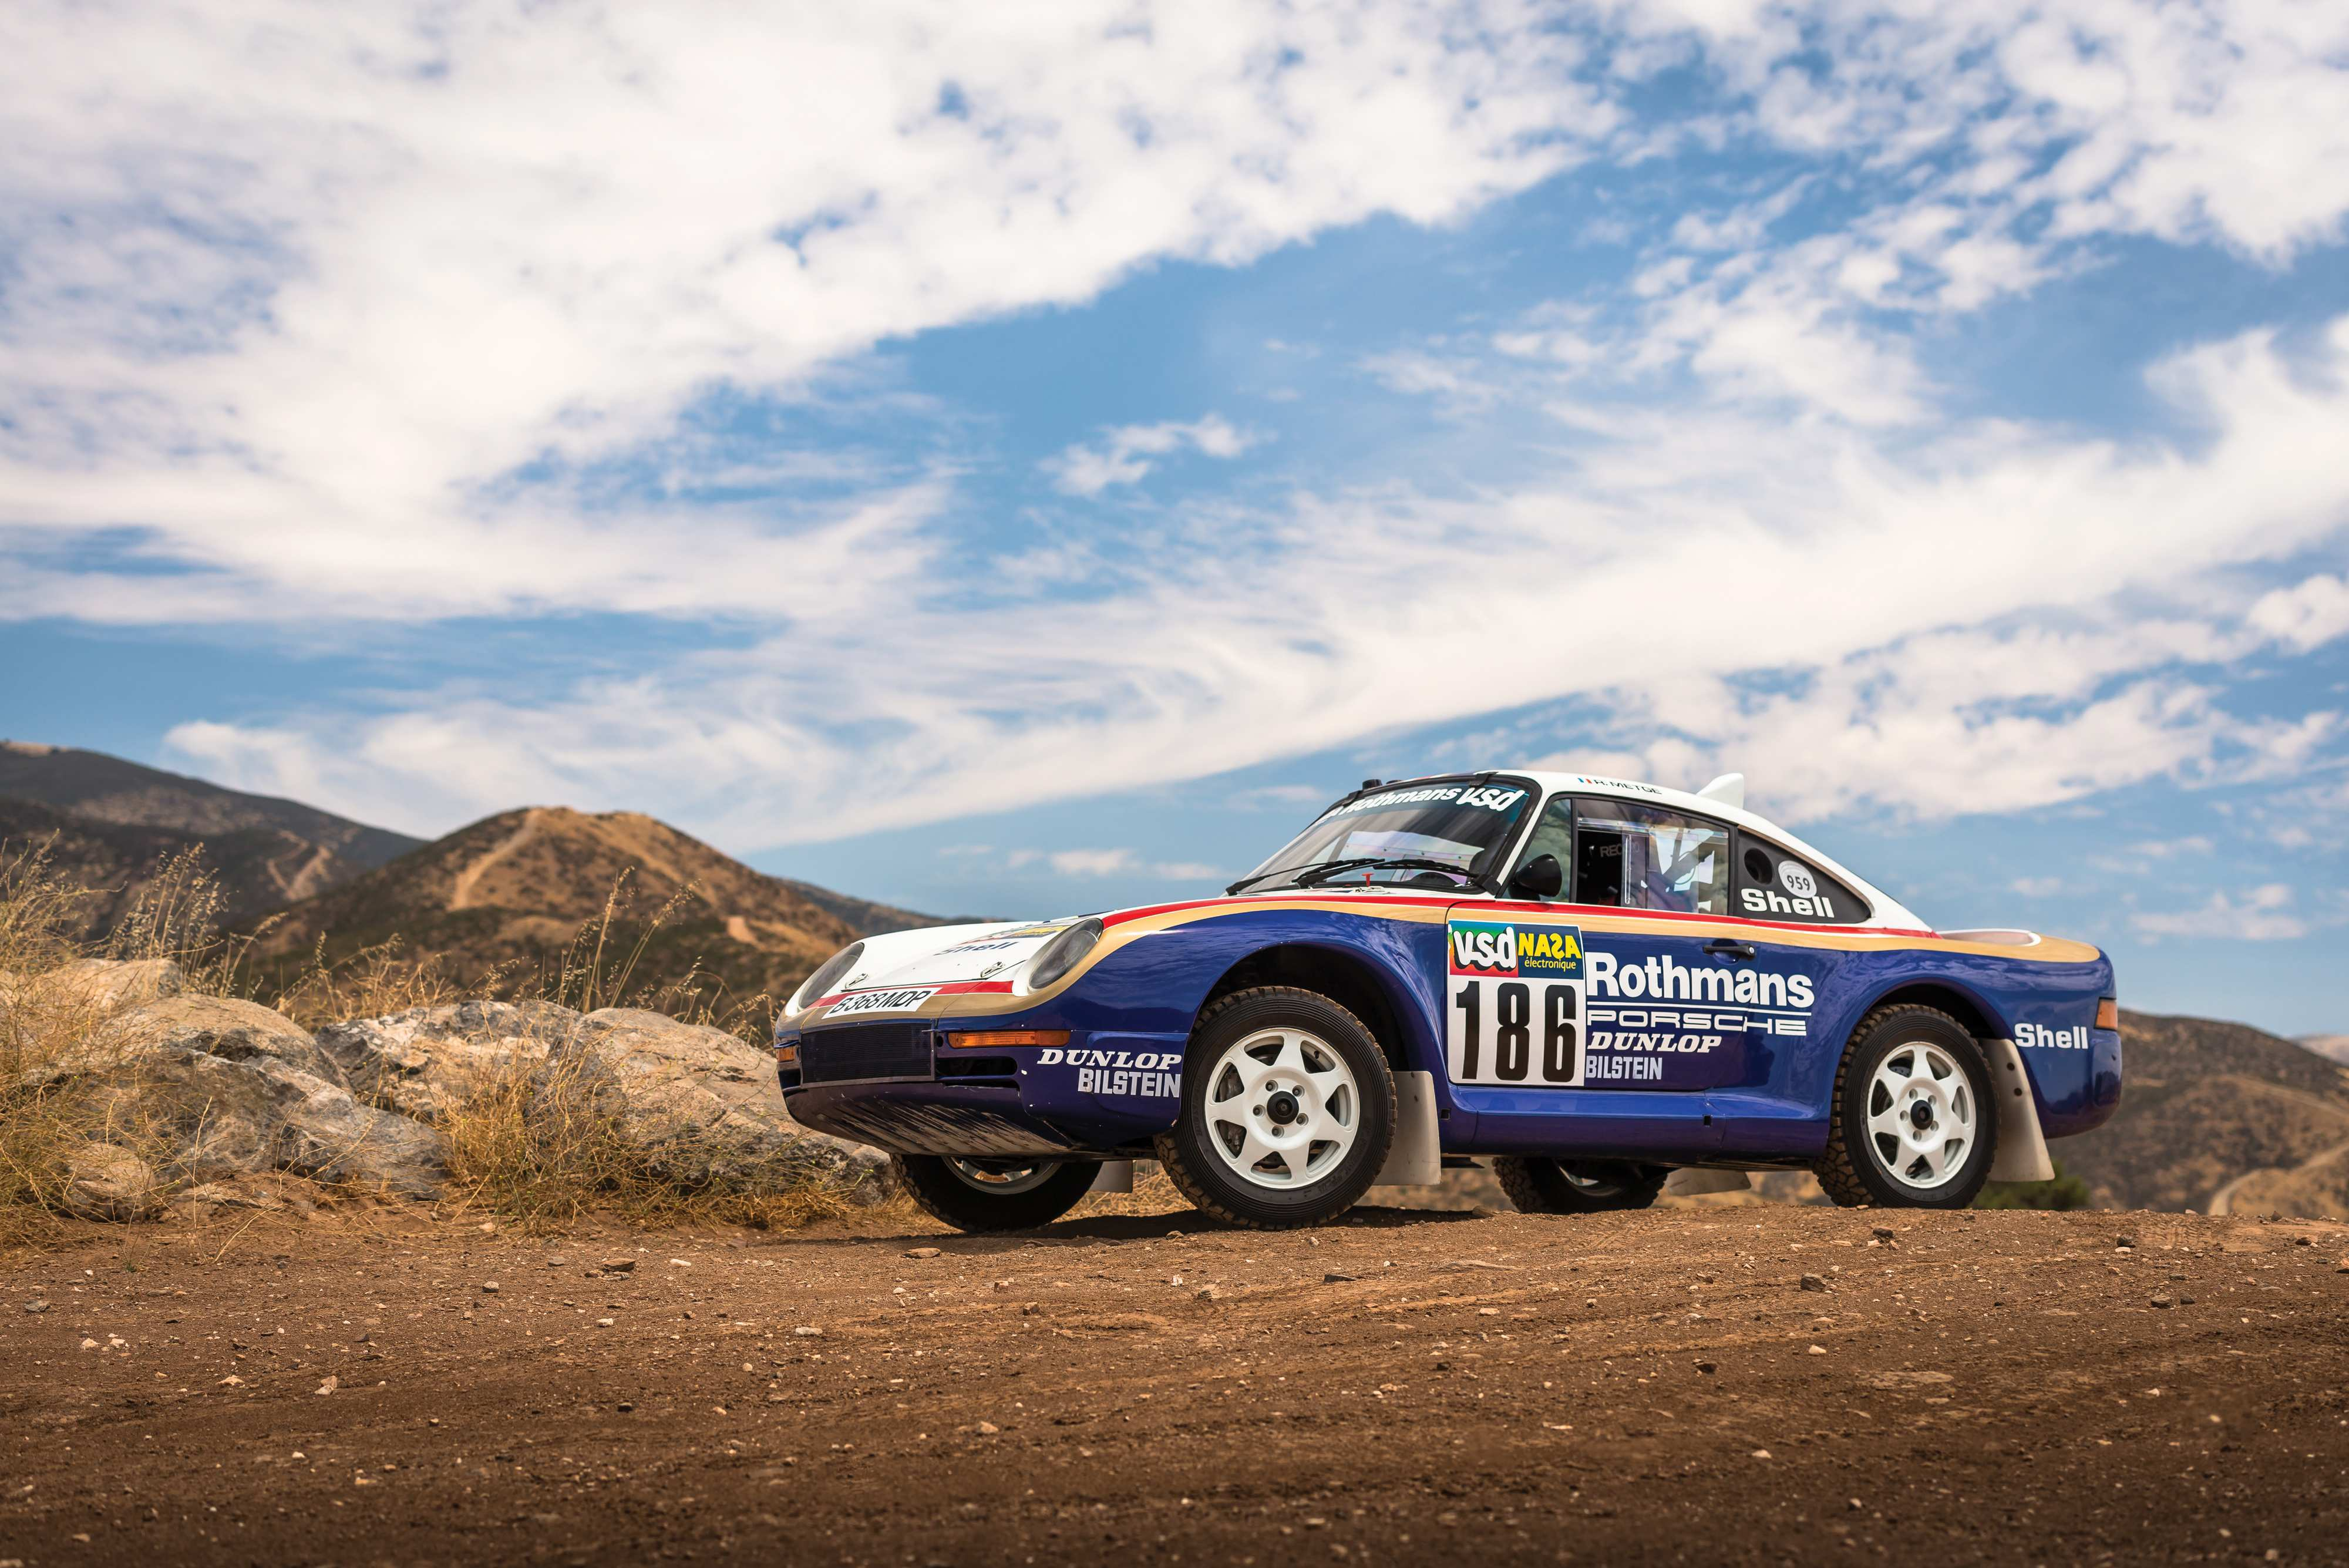 60 New Porsche Dakar 2020 Prices